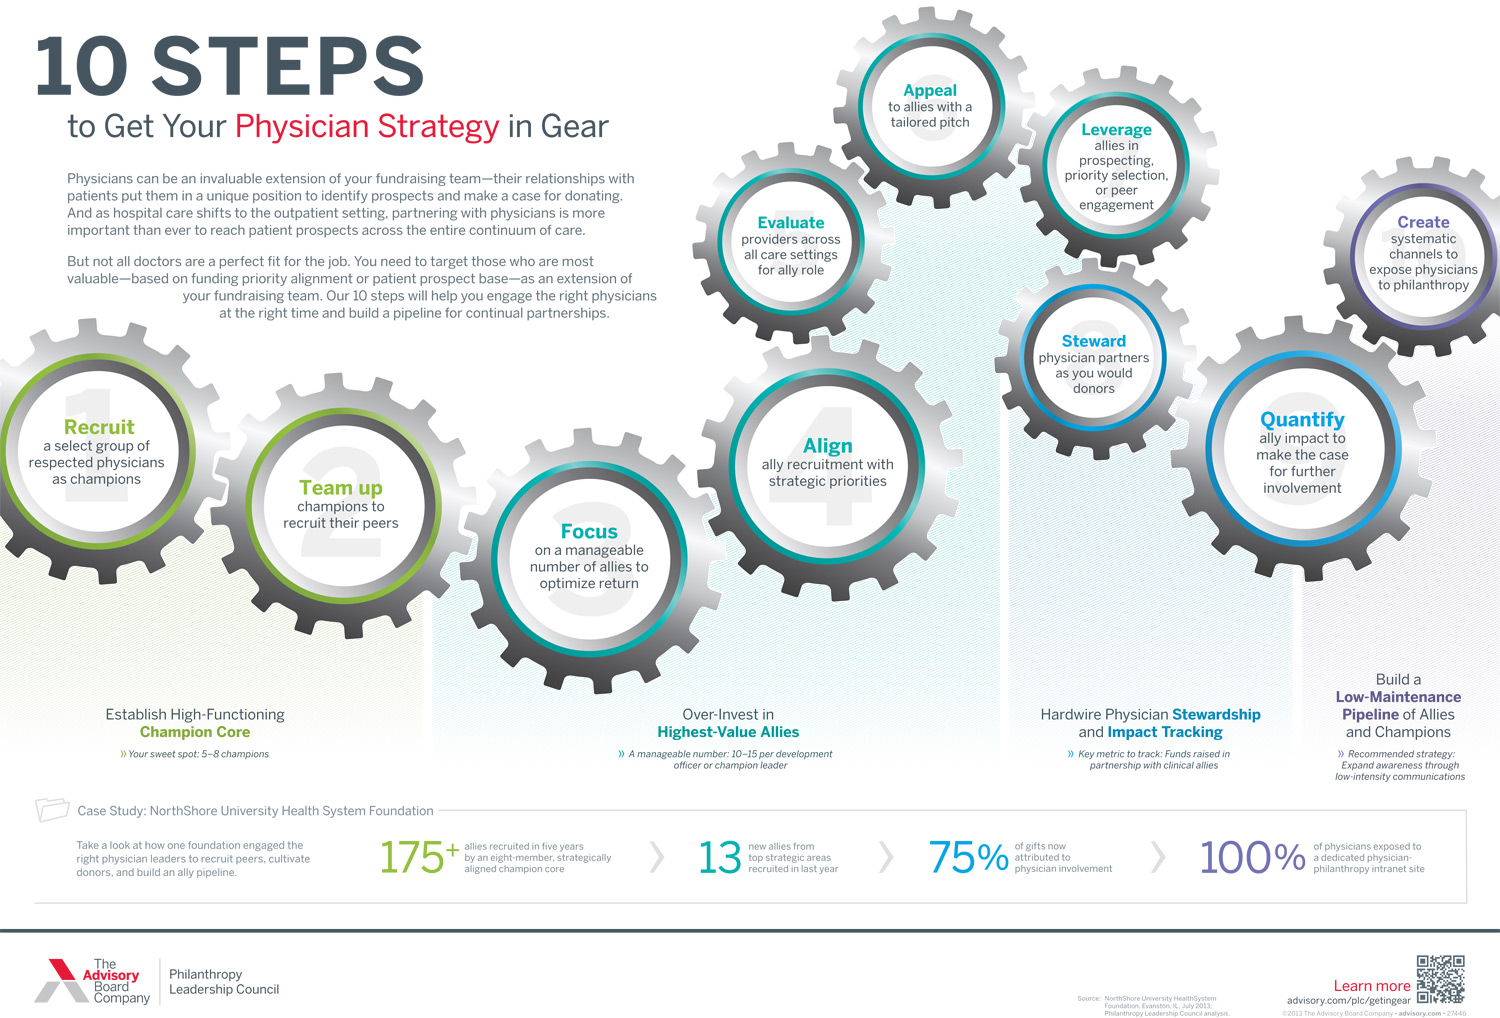 10 steps to get your philanthropy-physician strategy in gear